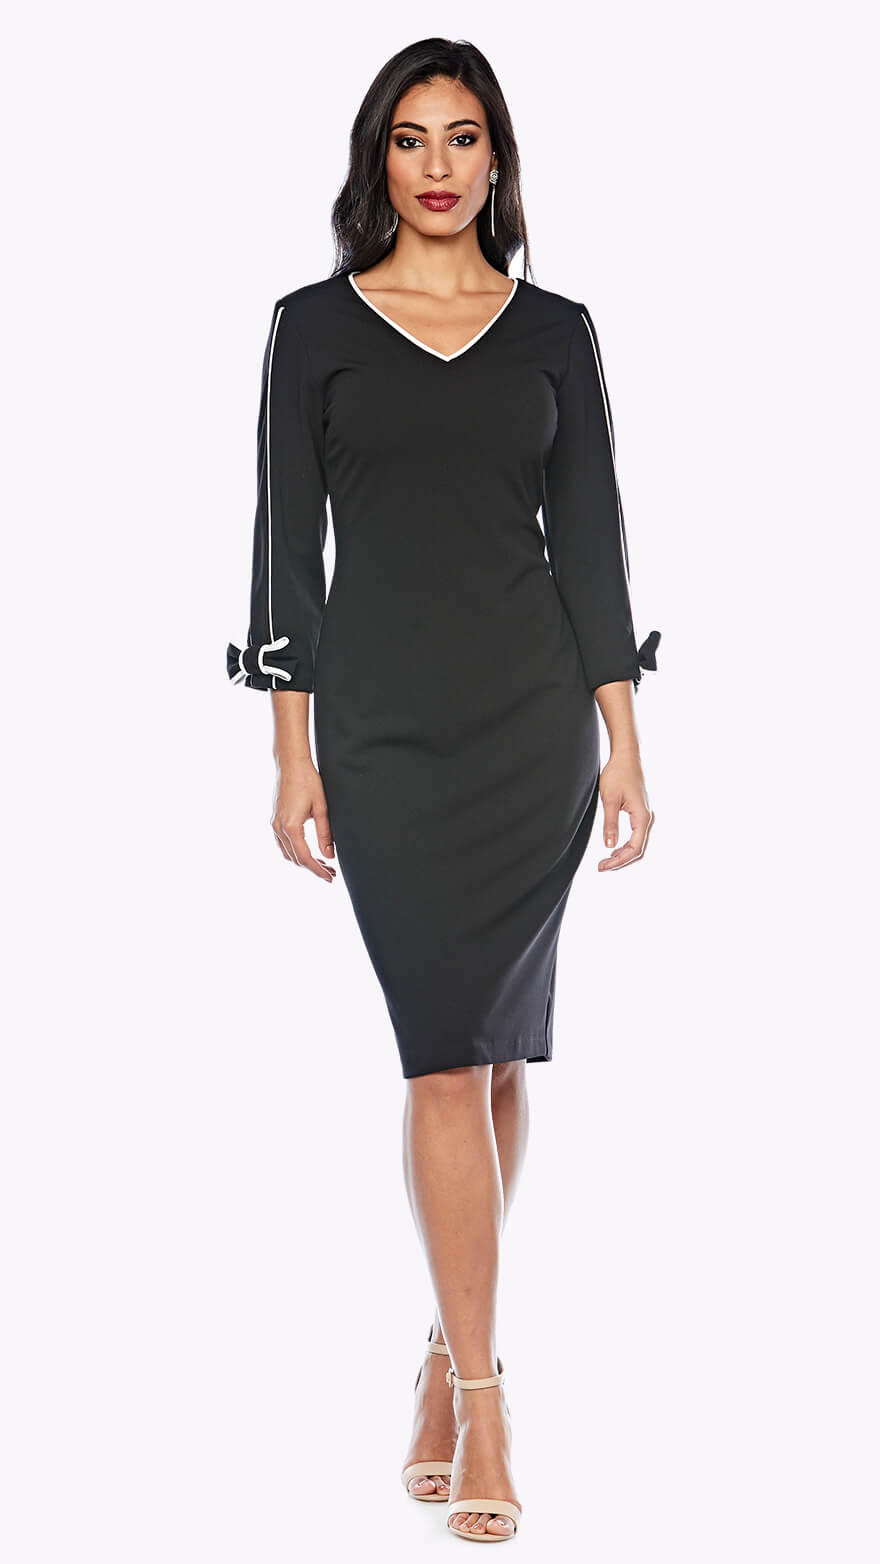 Z0211 V neck cocktail dress with 3/4 sleeve and contrast piping in white